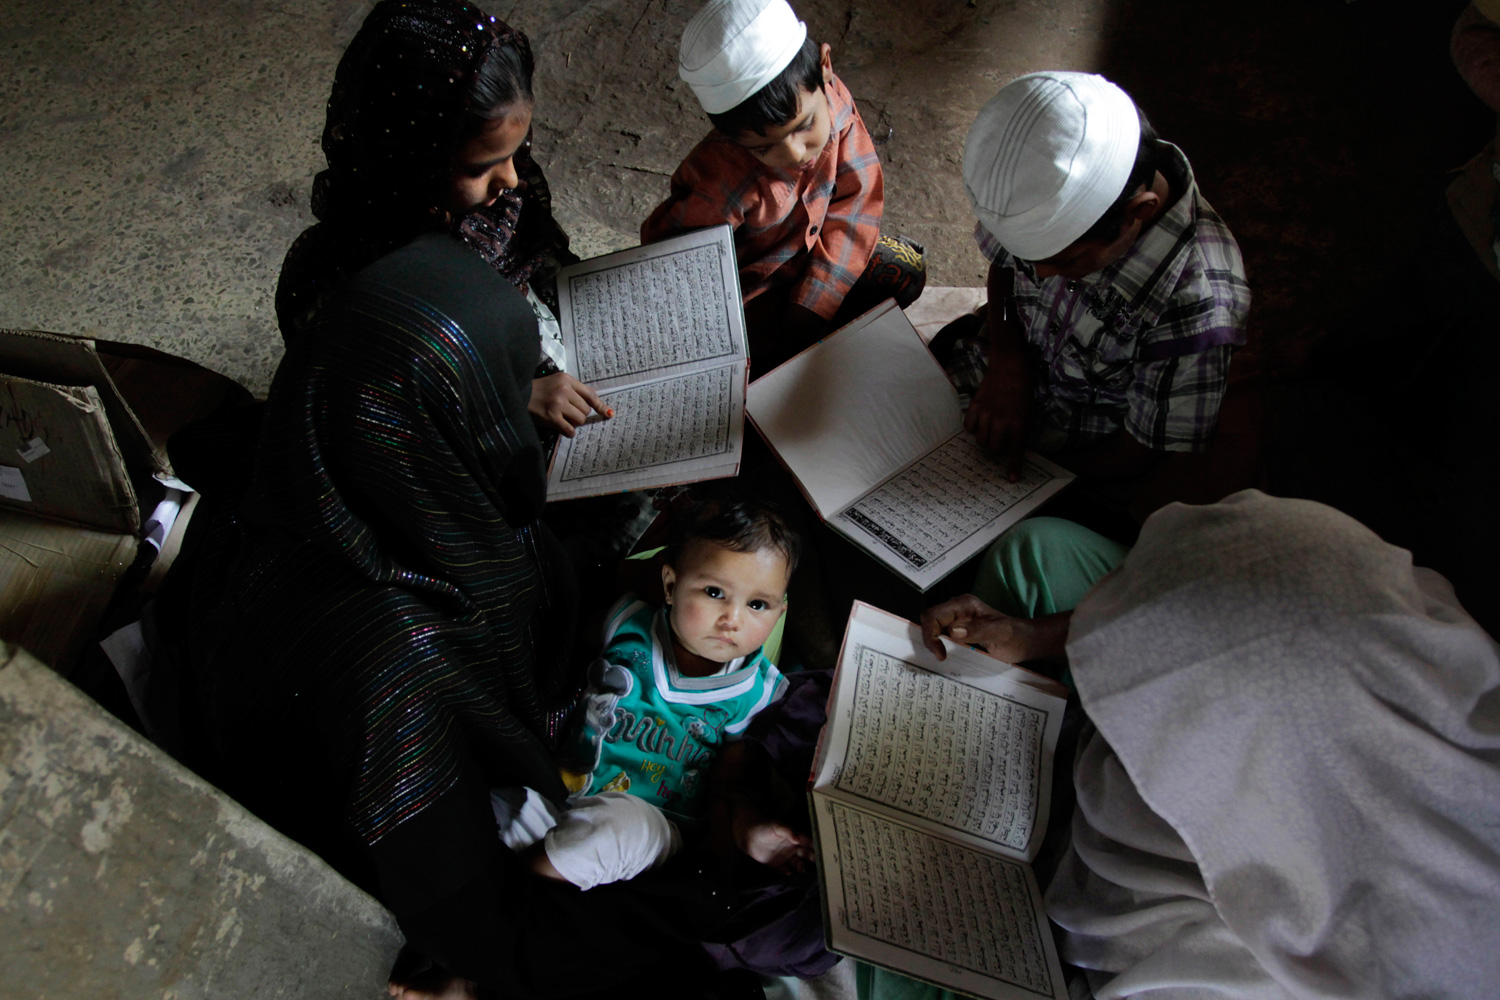 Feb. 27, 2012. An Indian child looks on as others read the Koran at Gulbarg society during a ceremony in Ahmedabad, India.